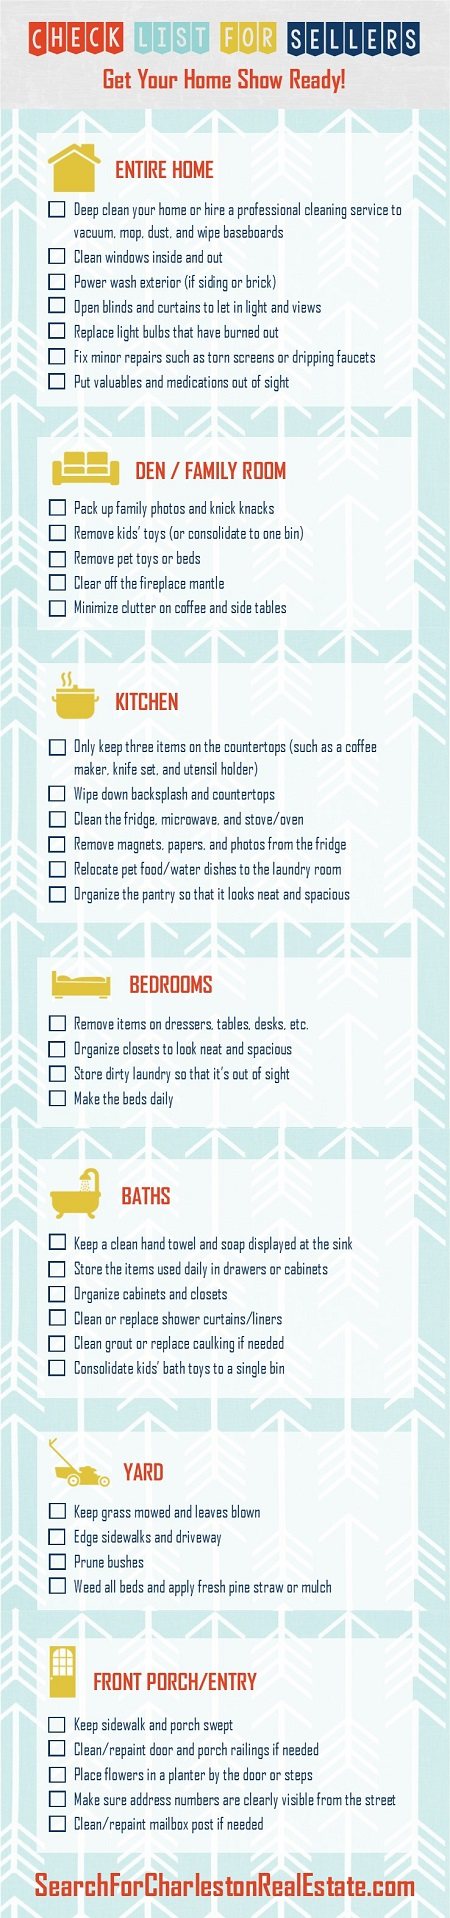 infographic check list to sellers to get their home ready for showings